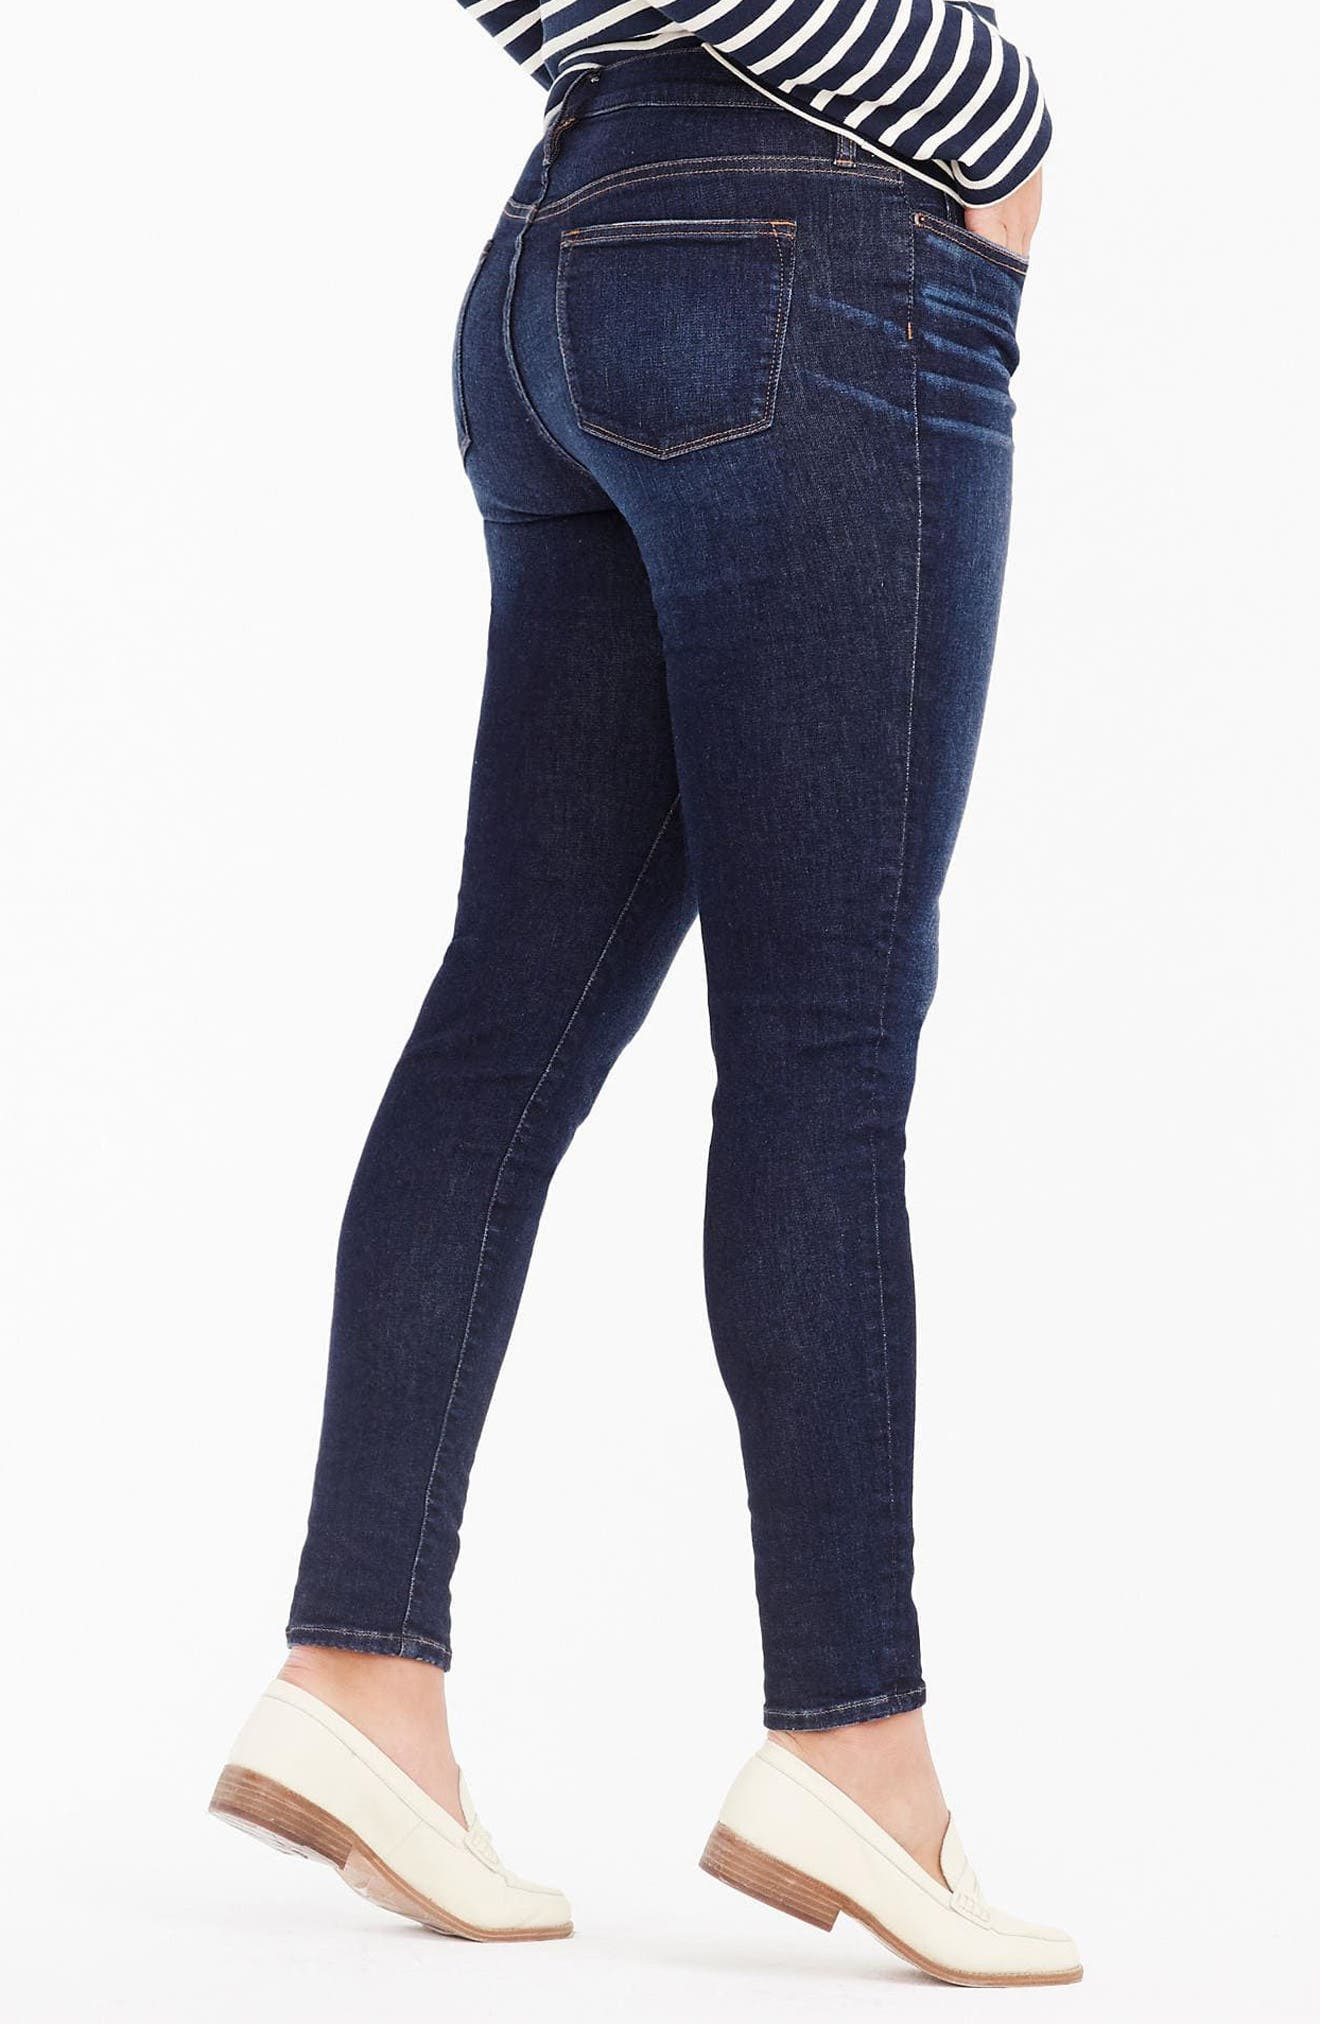 High Rise Toothpick Jeans,                             Alternate thumbnail 2, color,                             409